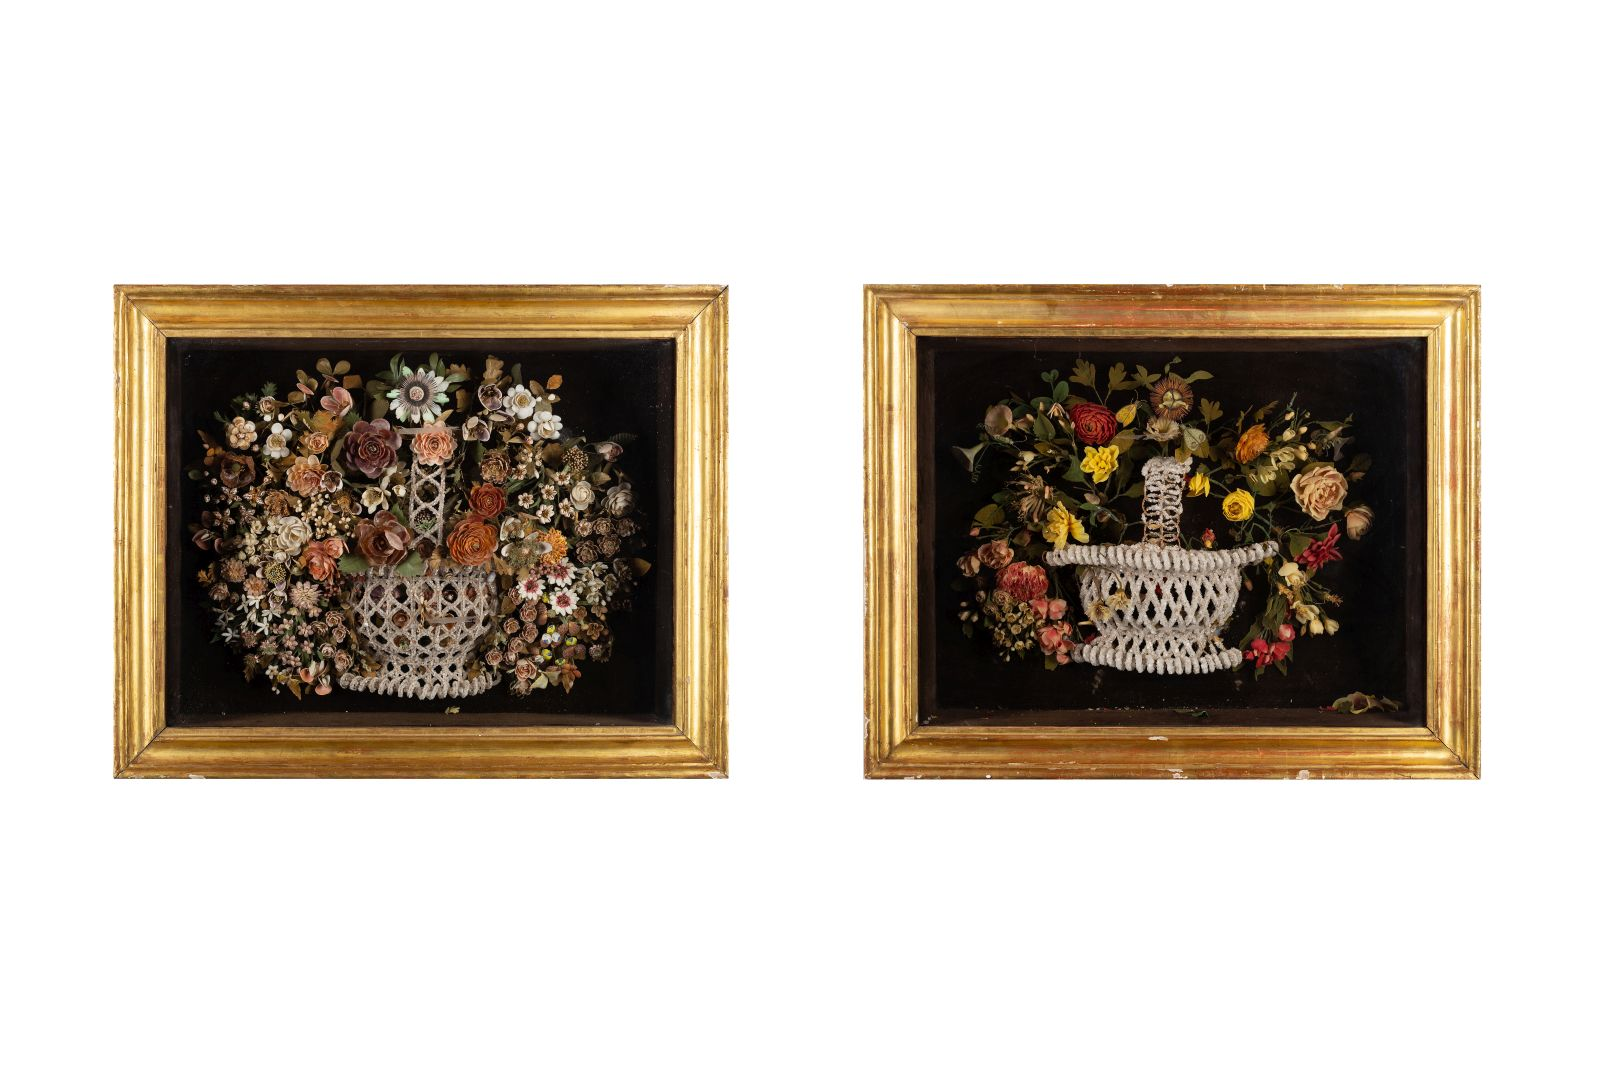 #32 Two Display Cases with Bouquets of Flowers, Sicily, 19th C. | Zwei Schaukästen mit Blumenbouquets, Sizilien, 19. Jh. Image